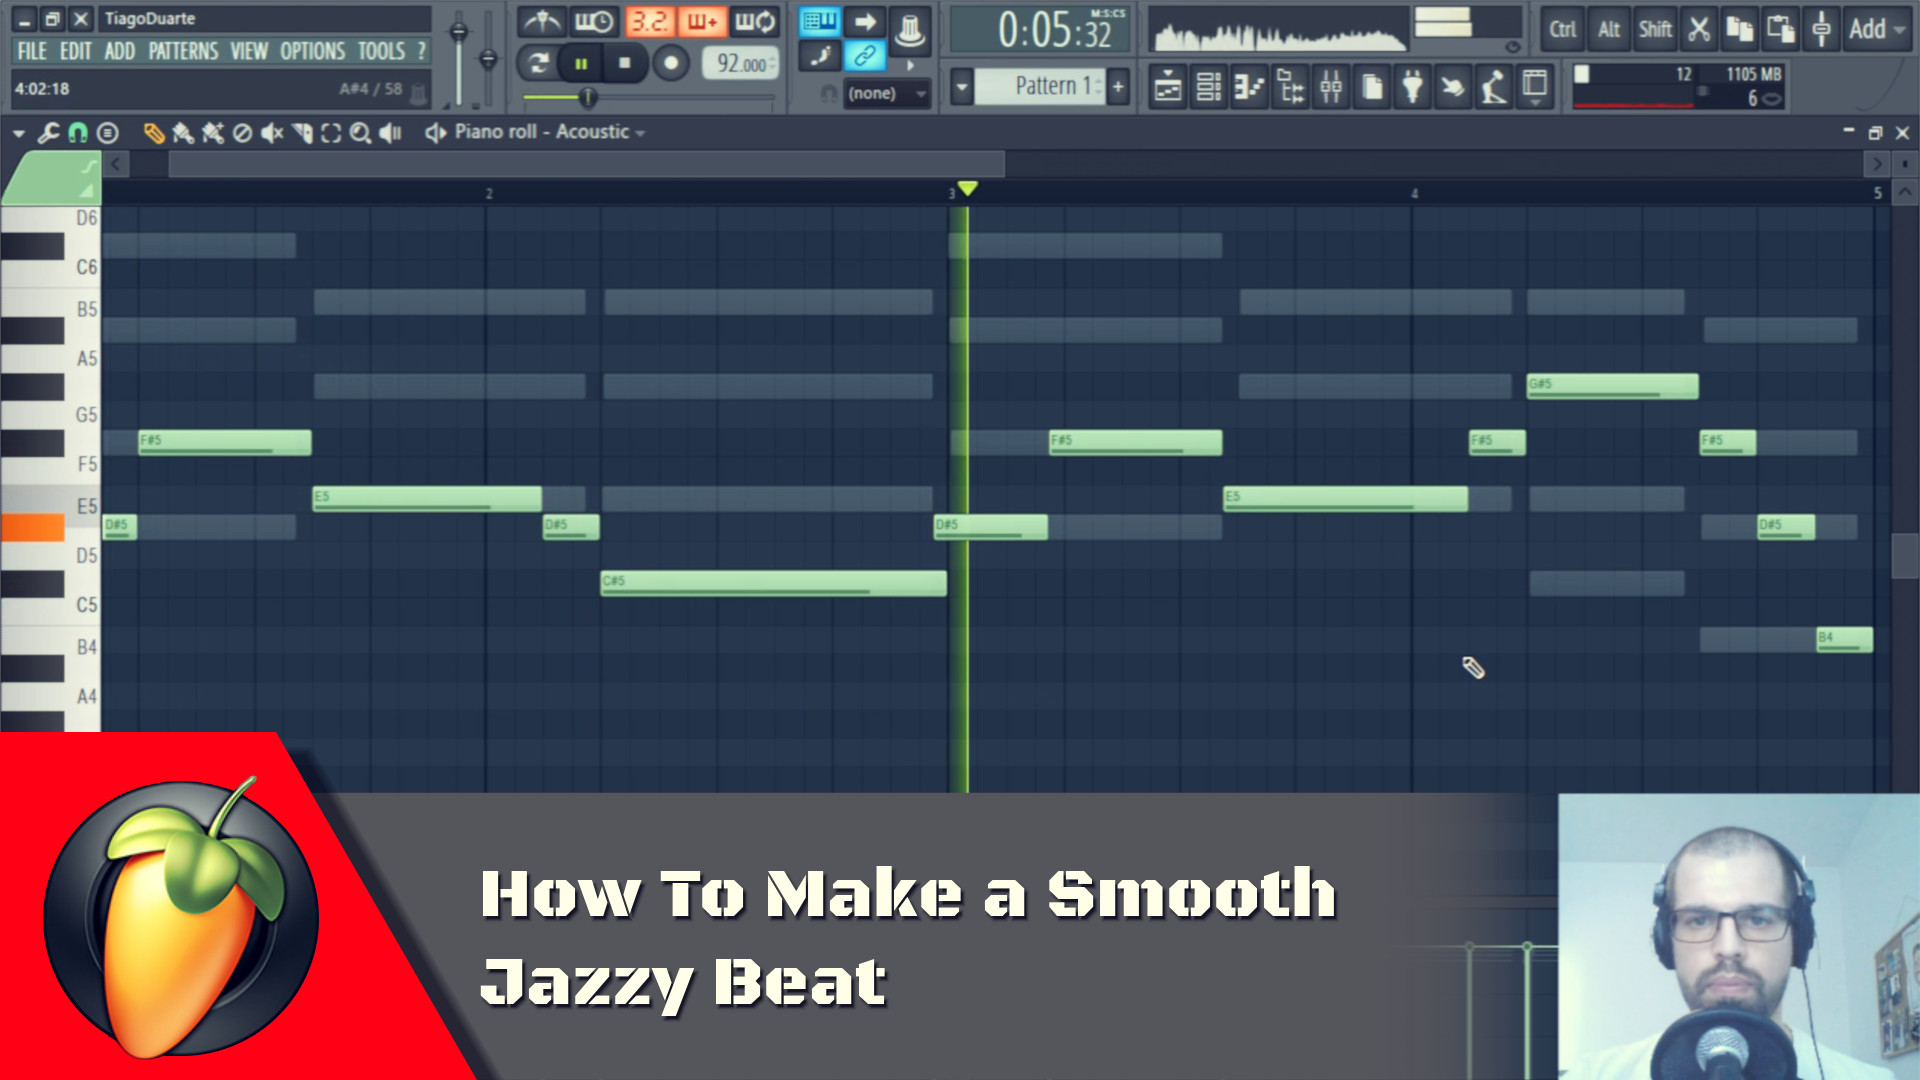 How To Make a Smooth Jazzy Beat